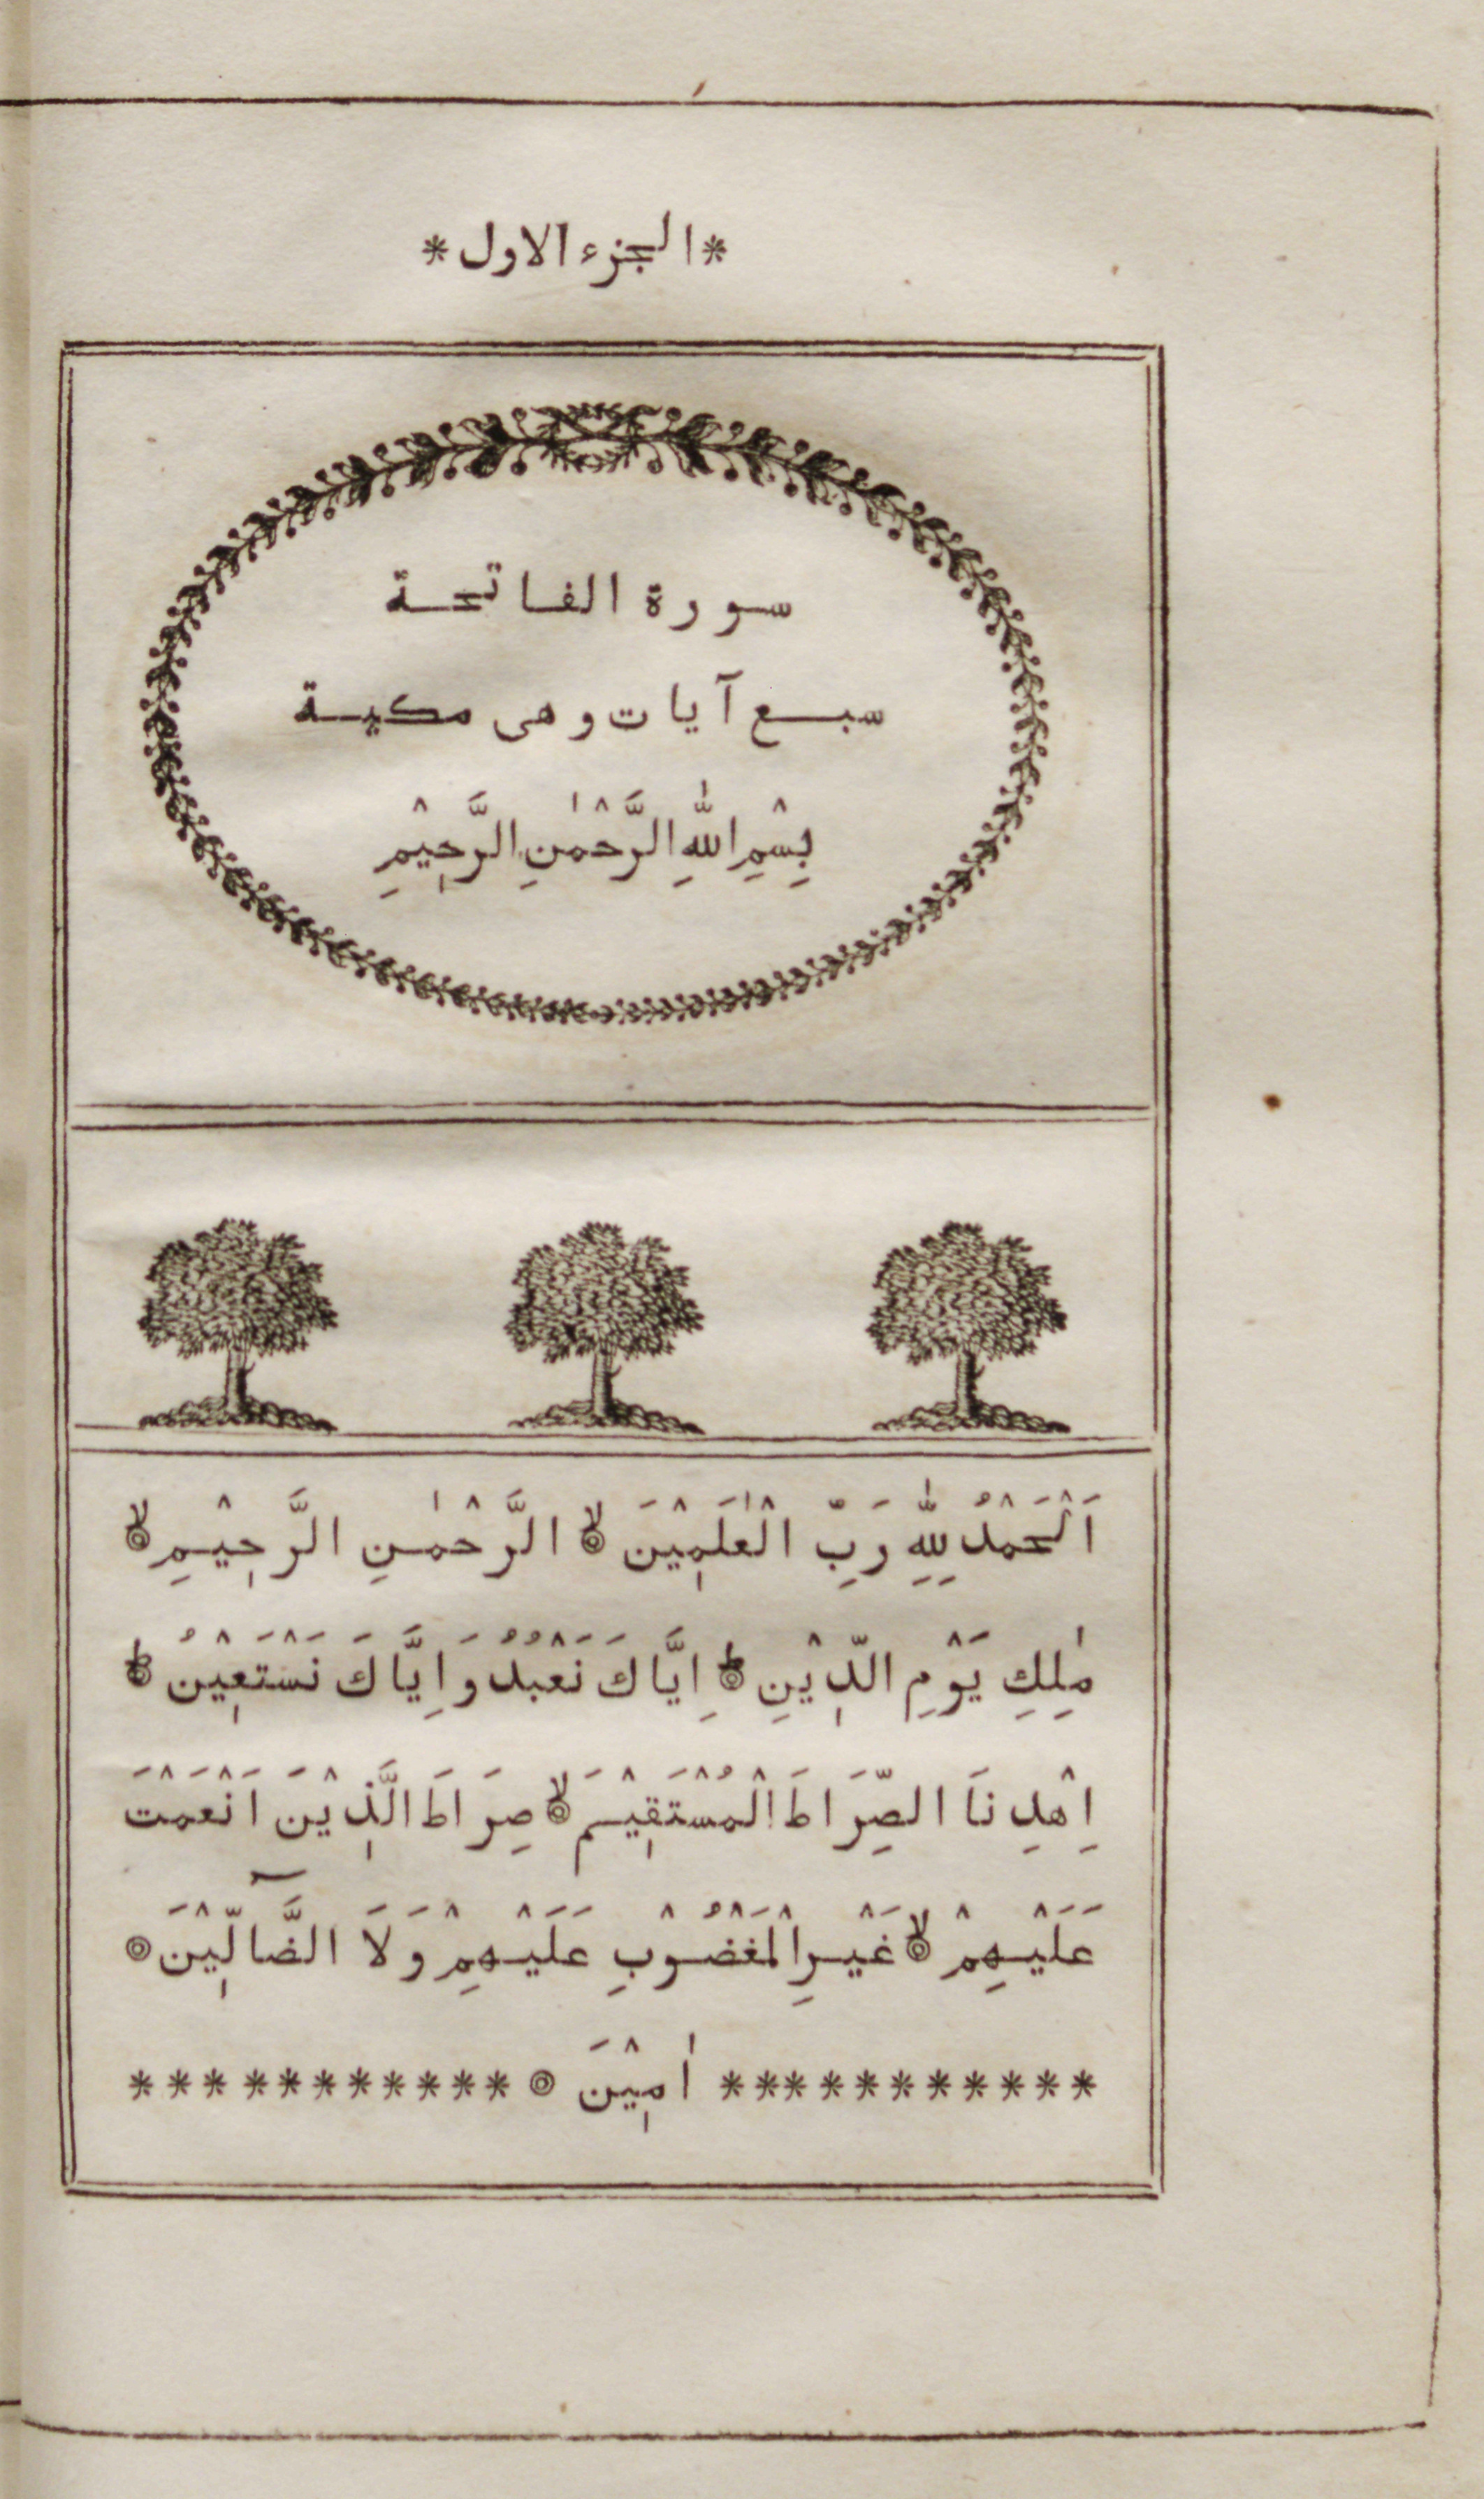 Early Arabic Printed Books from the British Library: Editor's highlights